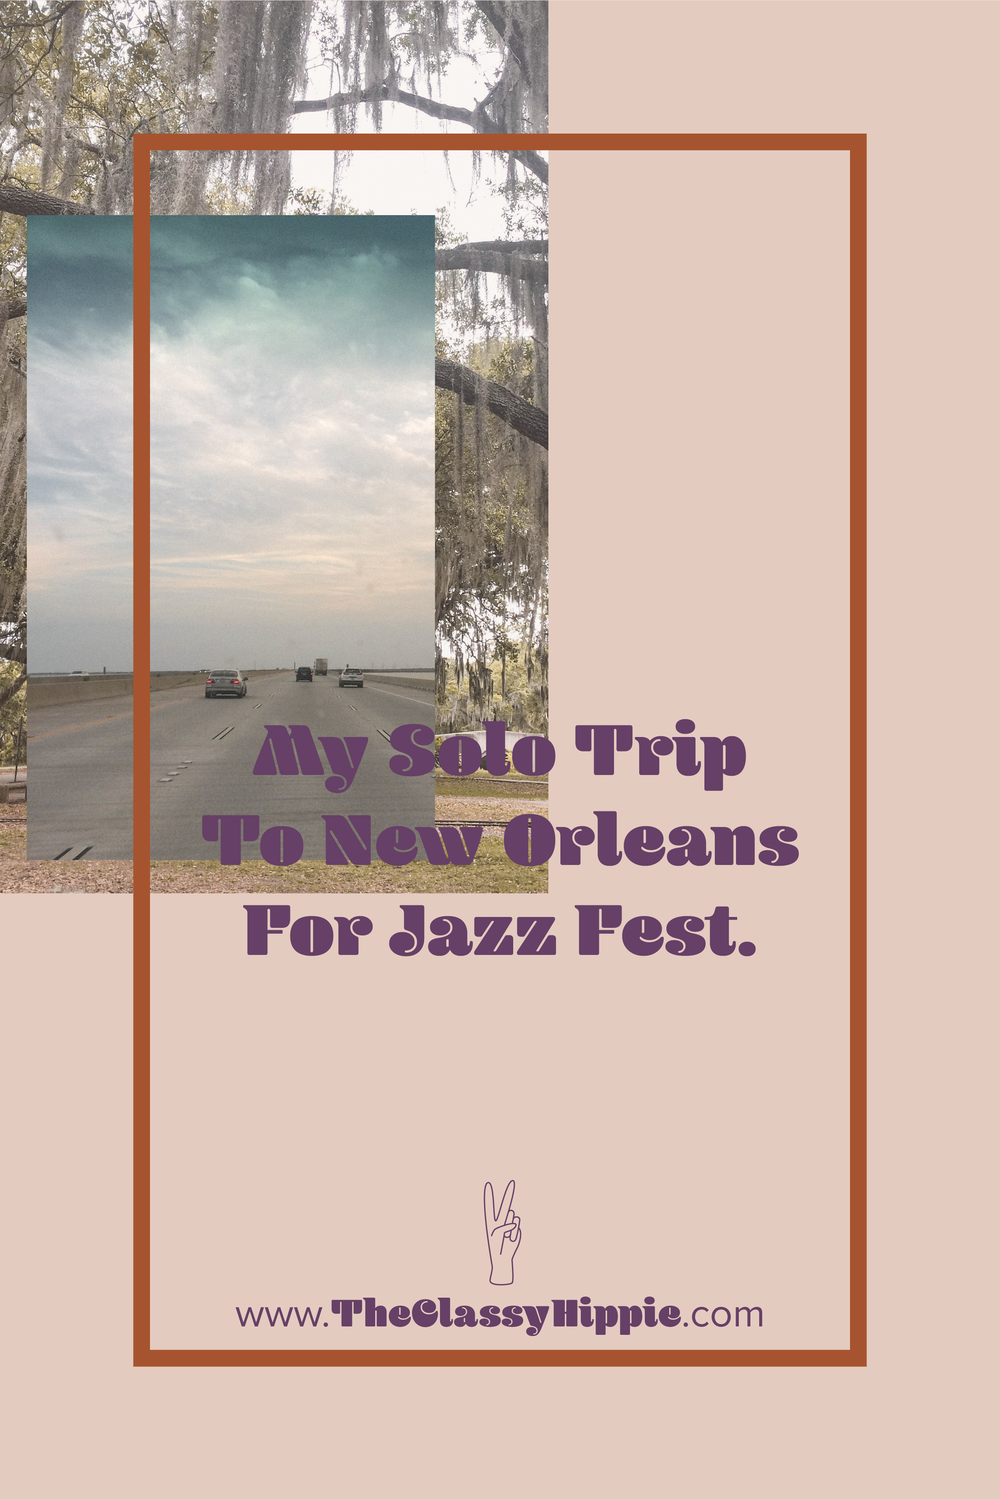 If you've ever held the belief that travel is expensive or solo travel is dangerous and scary - but have secretly wanted to do both - this post is for you!  My solo trip to New Orleans was the Abundant Result of flipping the script on those limiting beliefs!